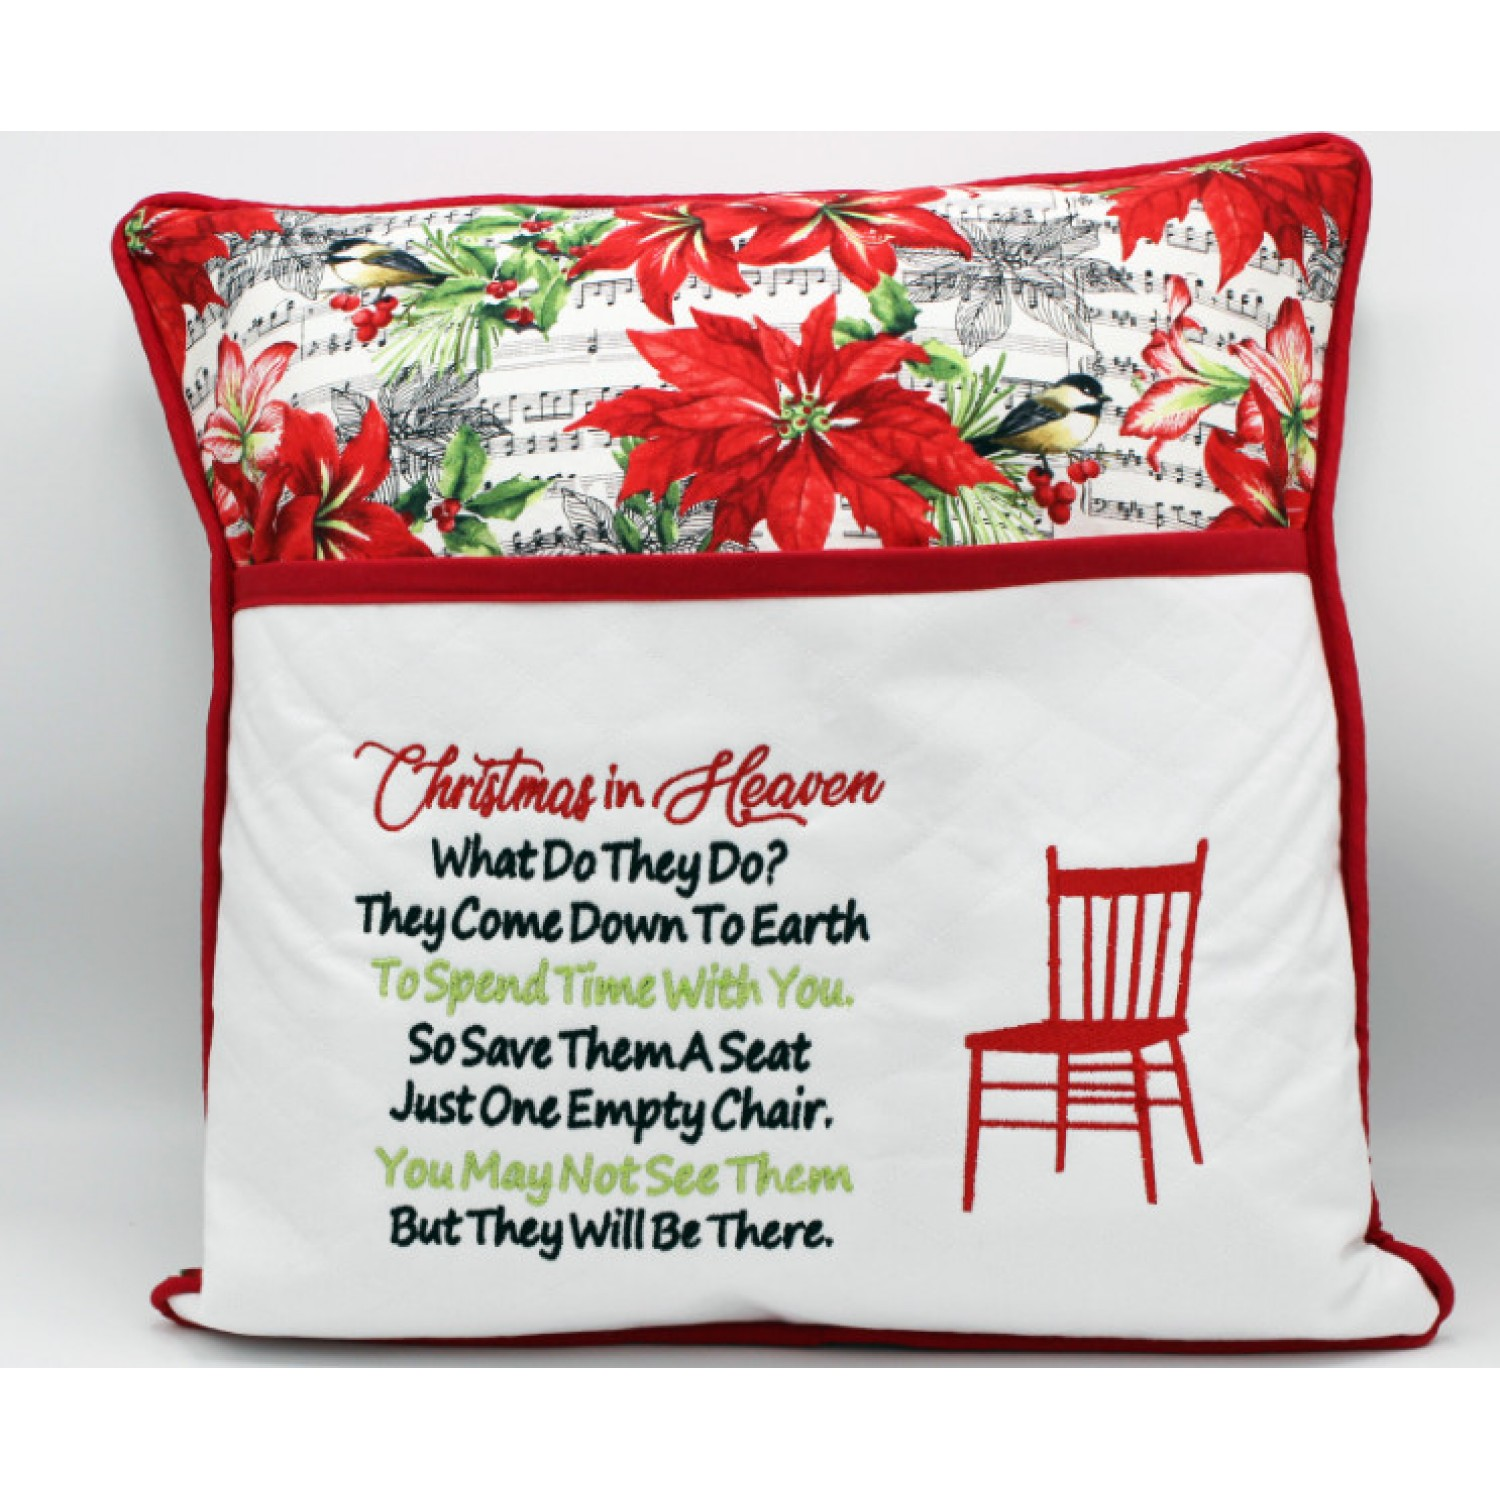 Christmas in Heaven with Chair embroidery